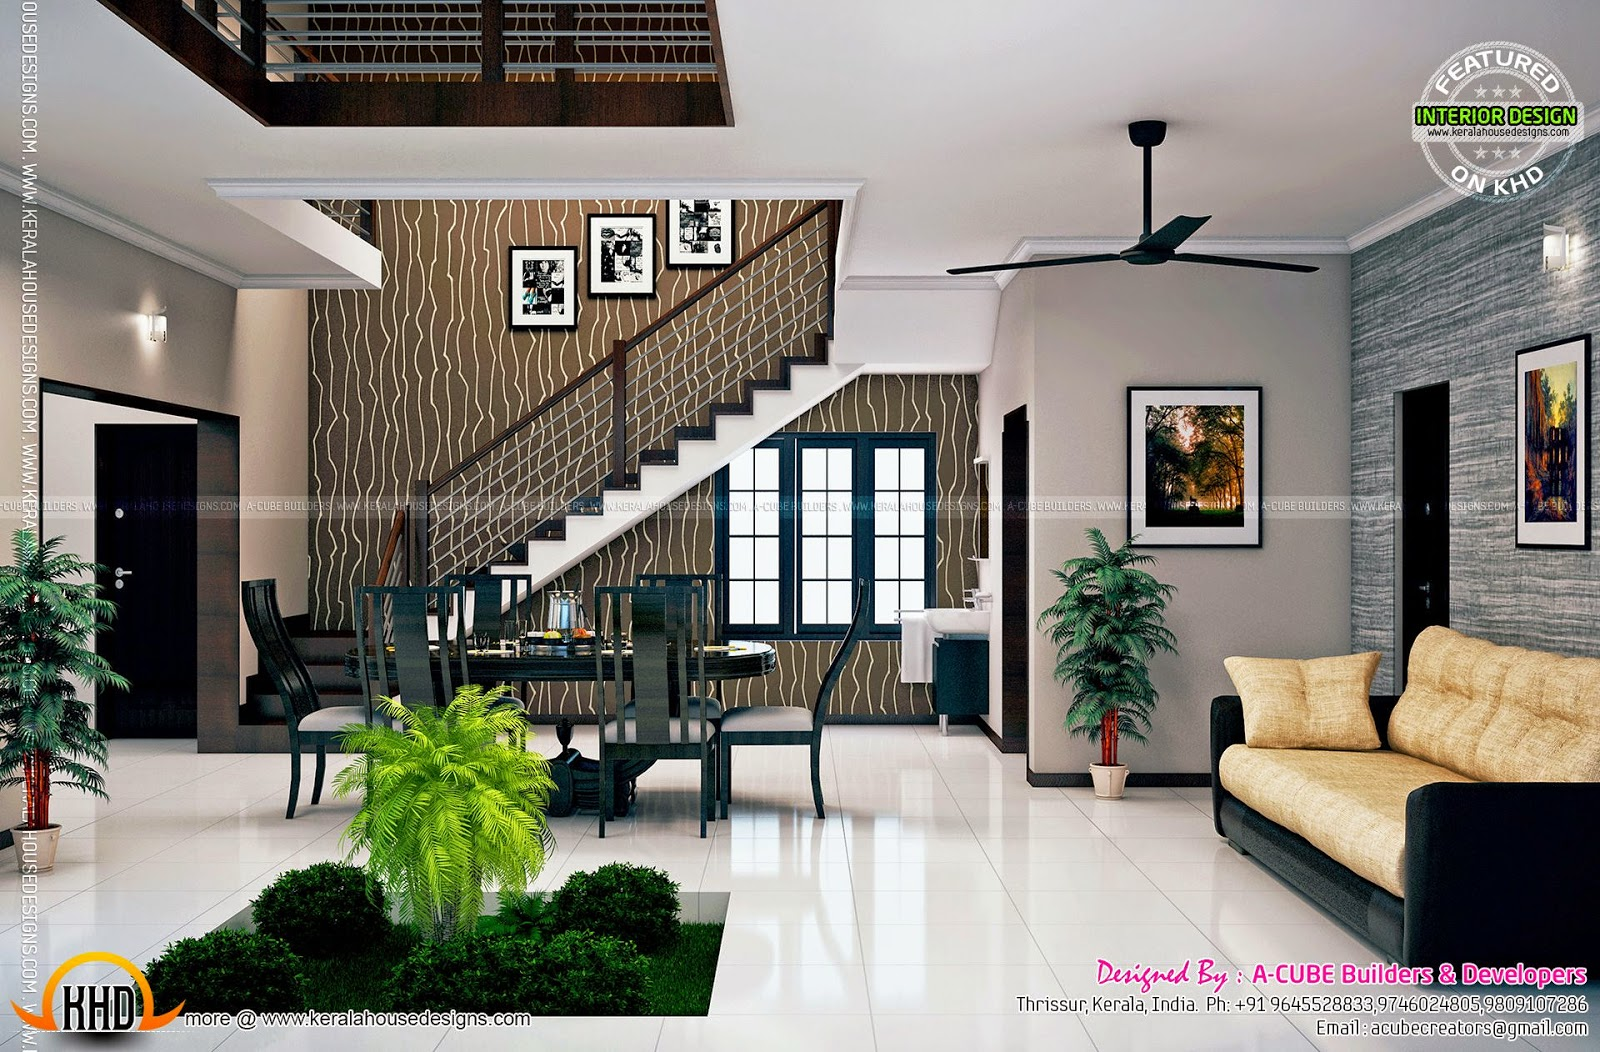 Kerala interior design ideas kerala home design and for Home dining hall design